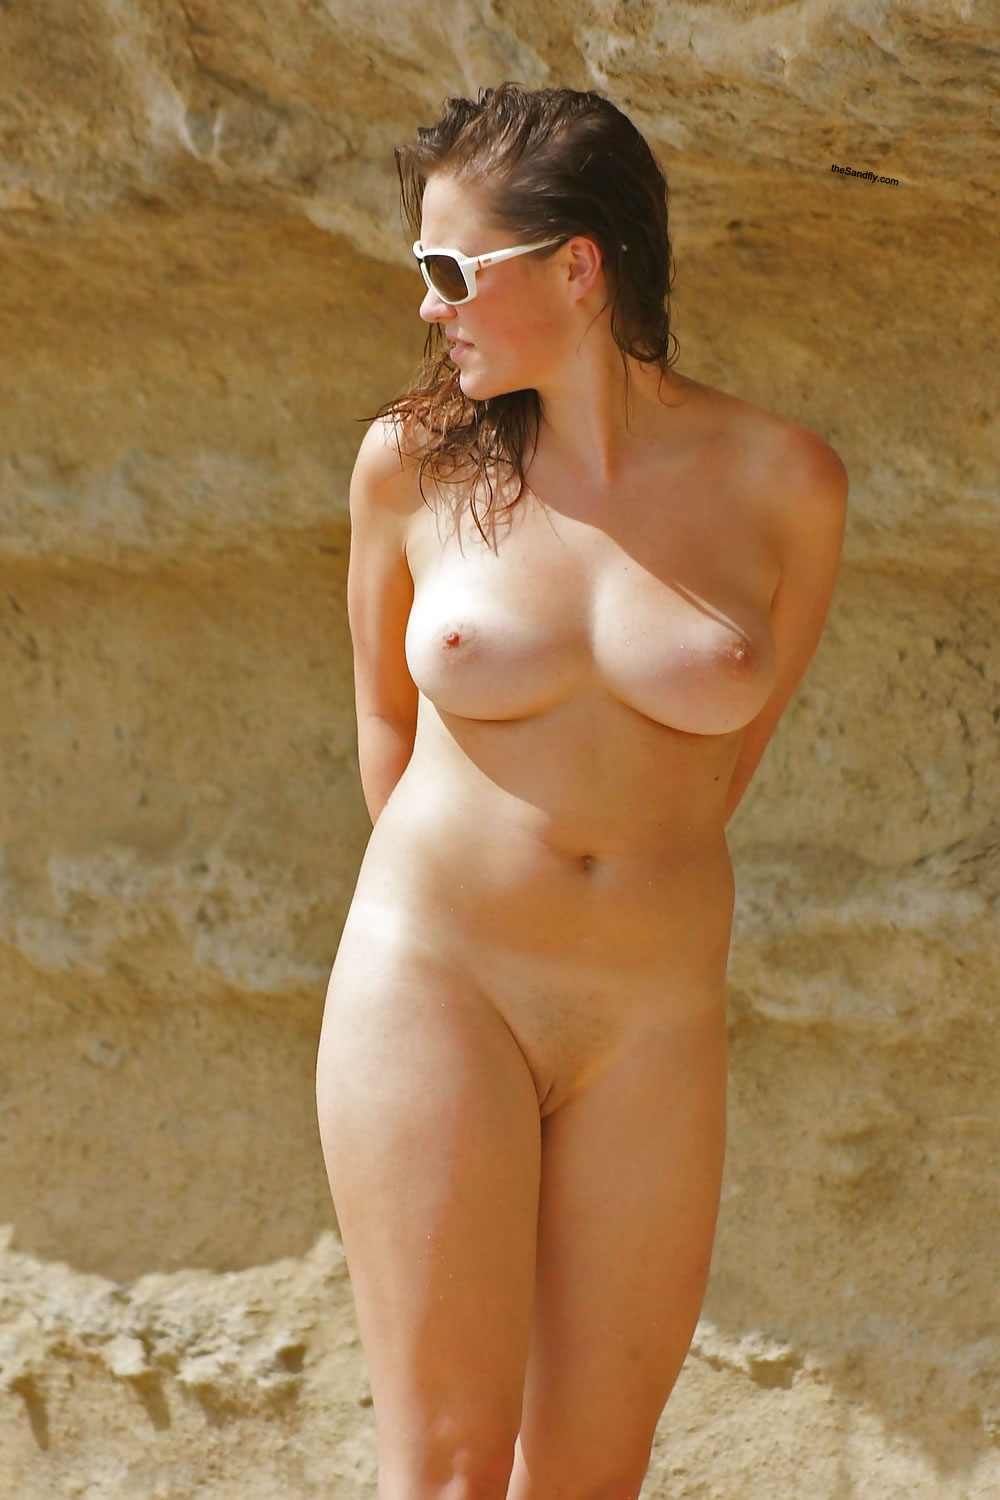 Thesandfly hot nude beach action 9